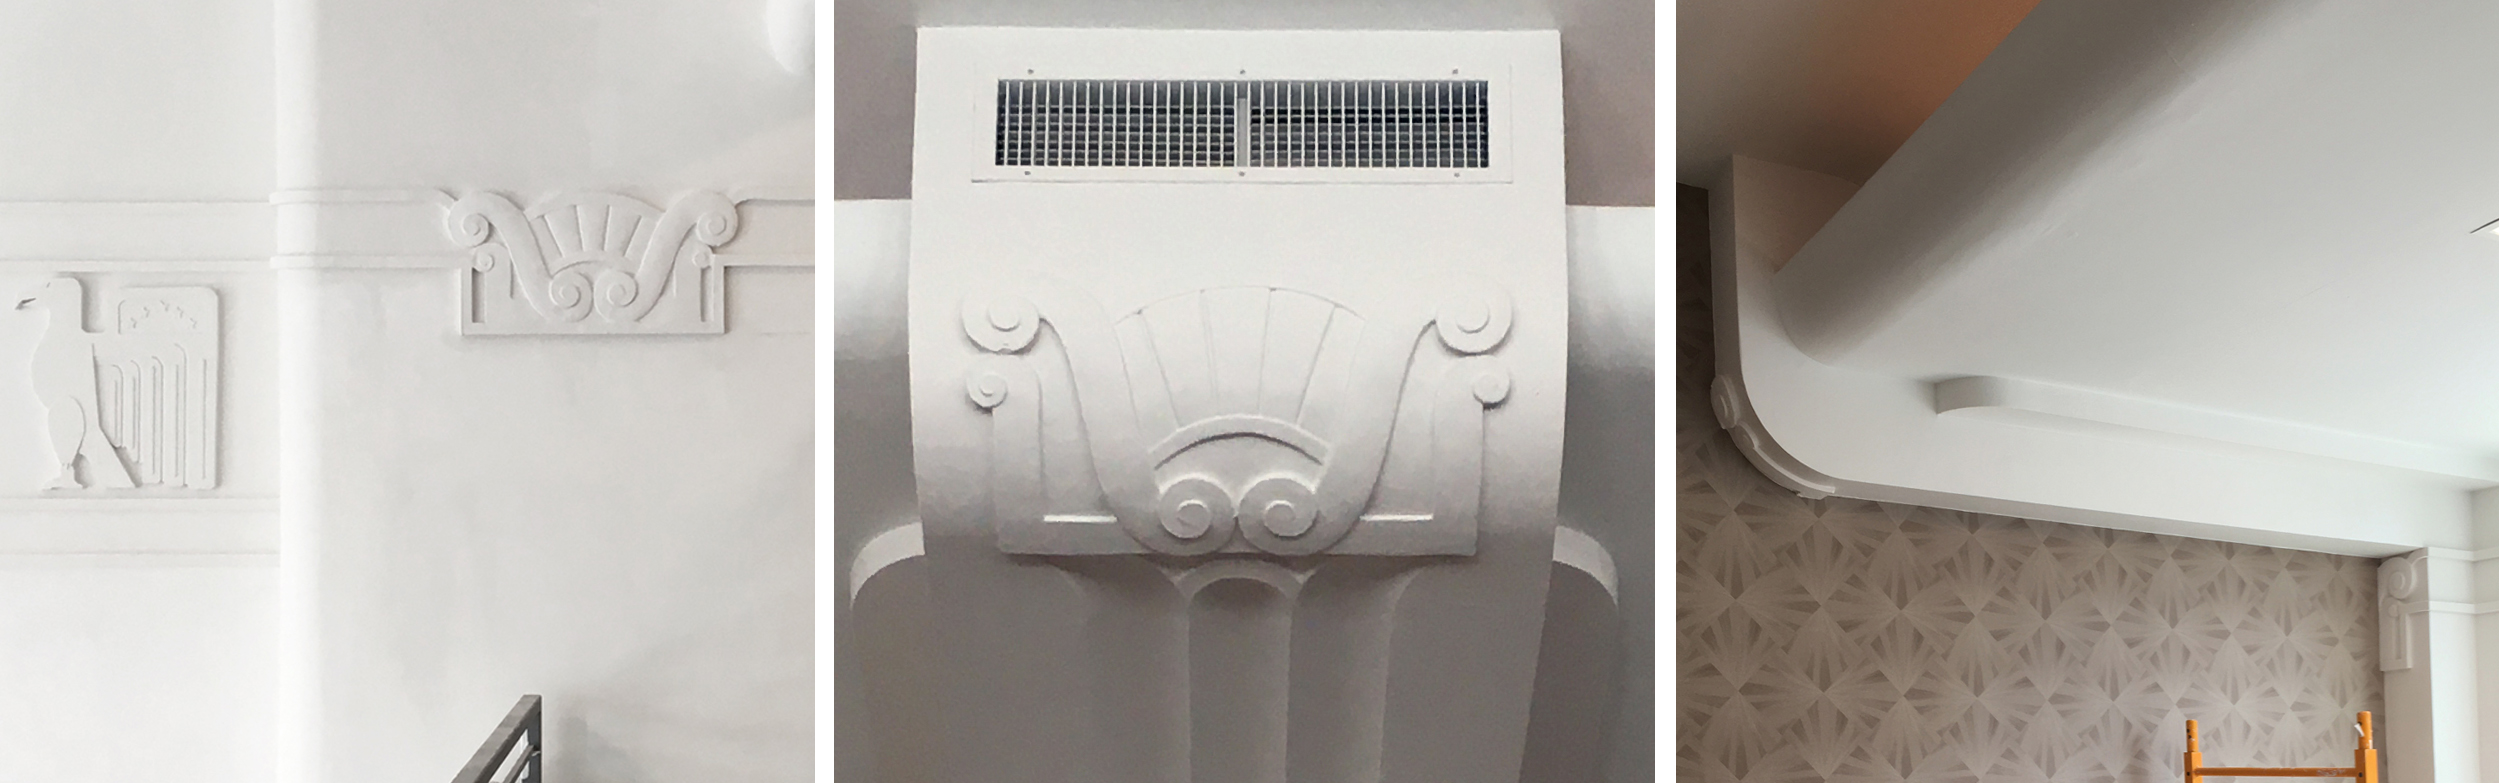 Repaired flourishes and molding in the renovated Hilton Garden Inn